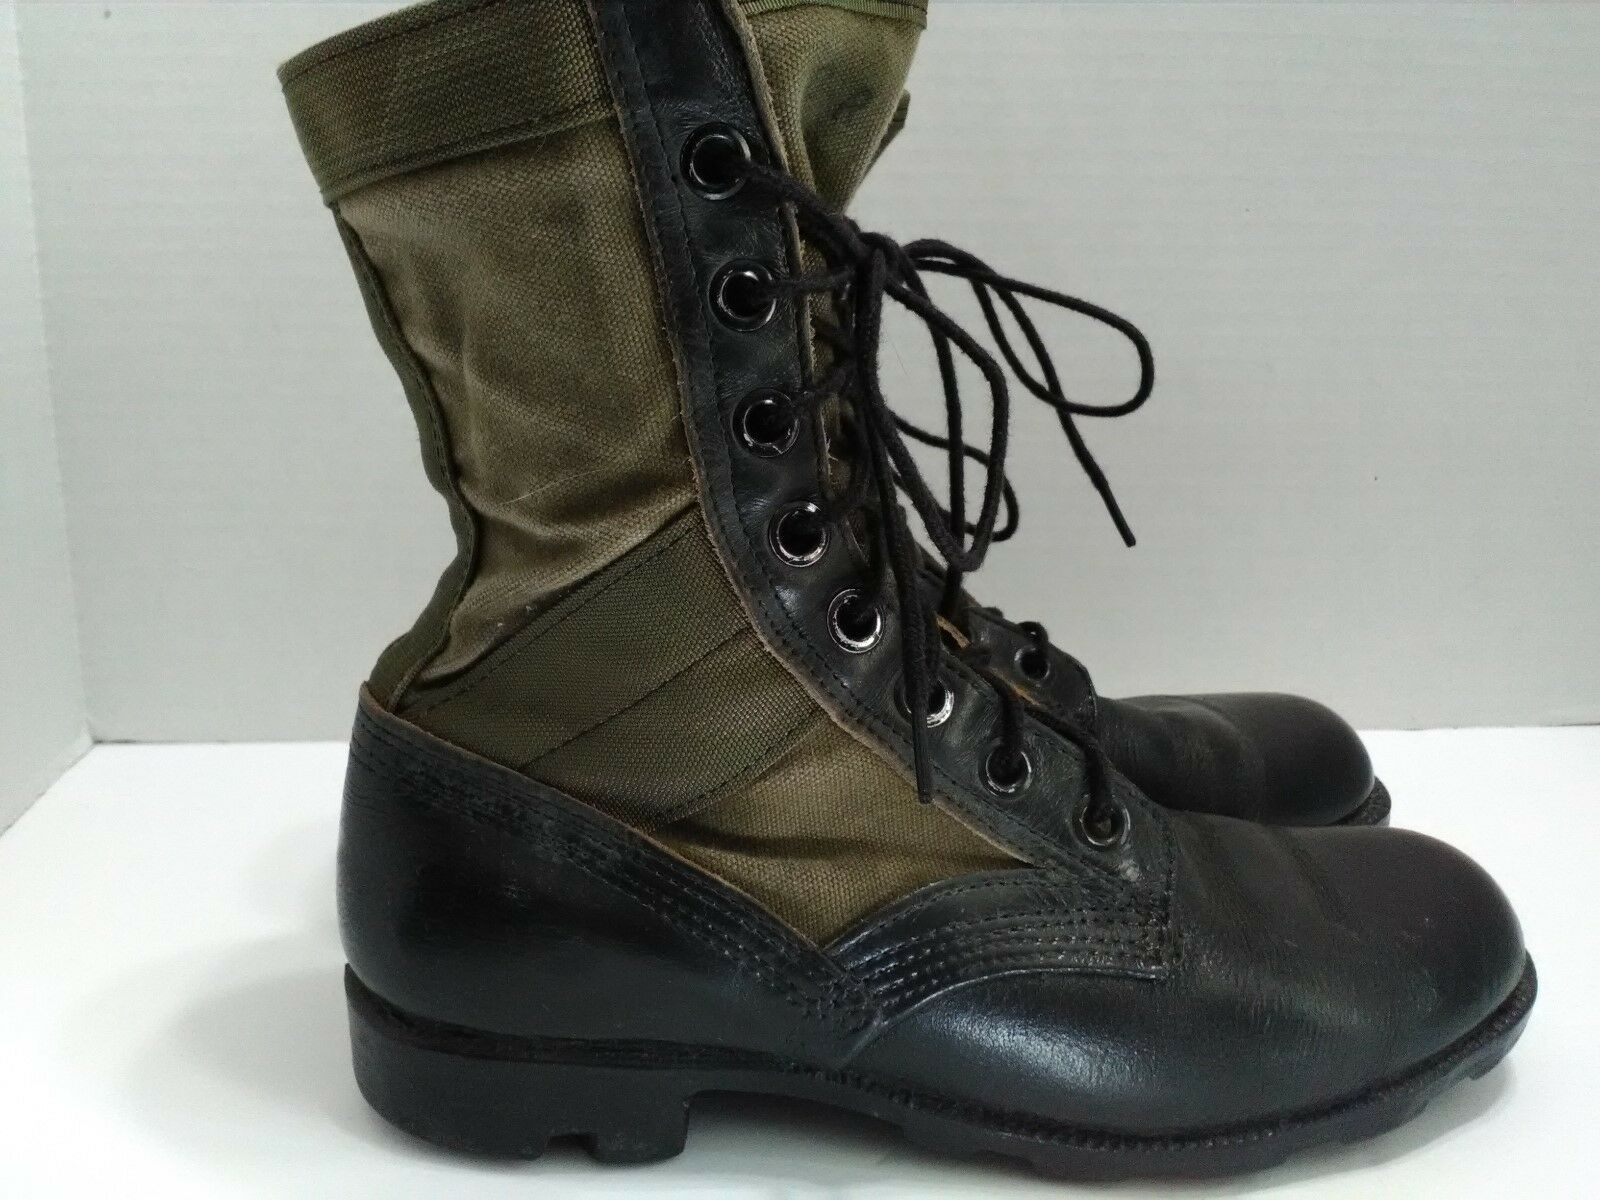 Military green olive jungle boots hot weather RO search size 6R men women unisex